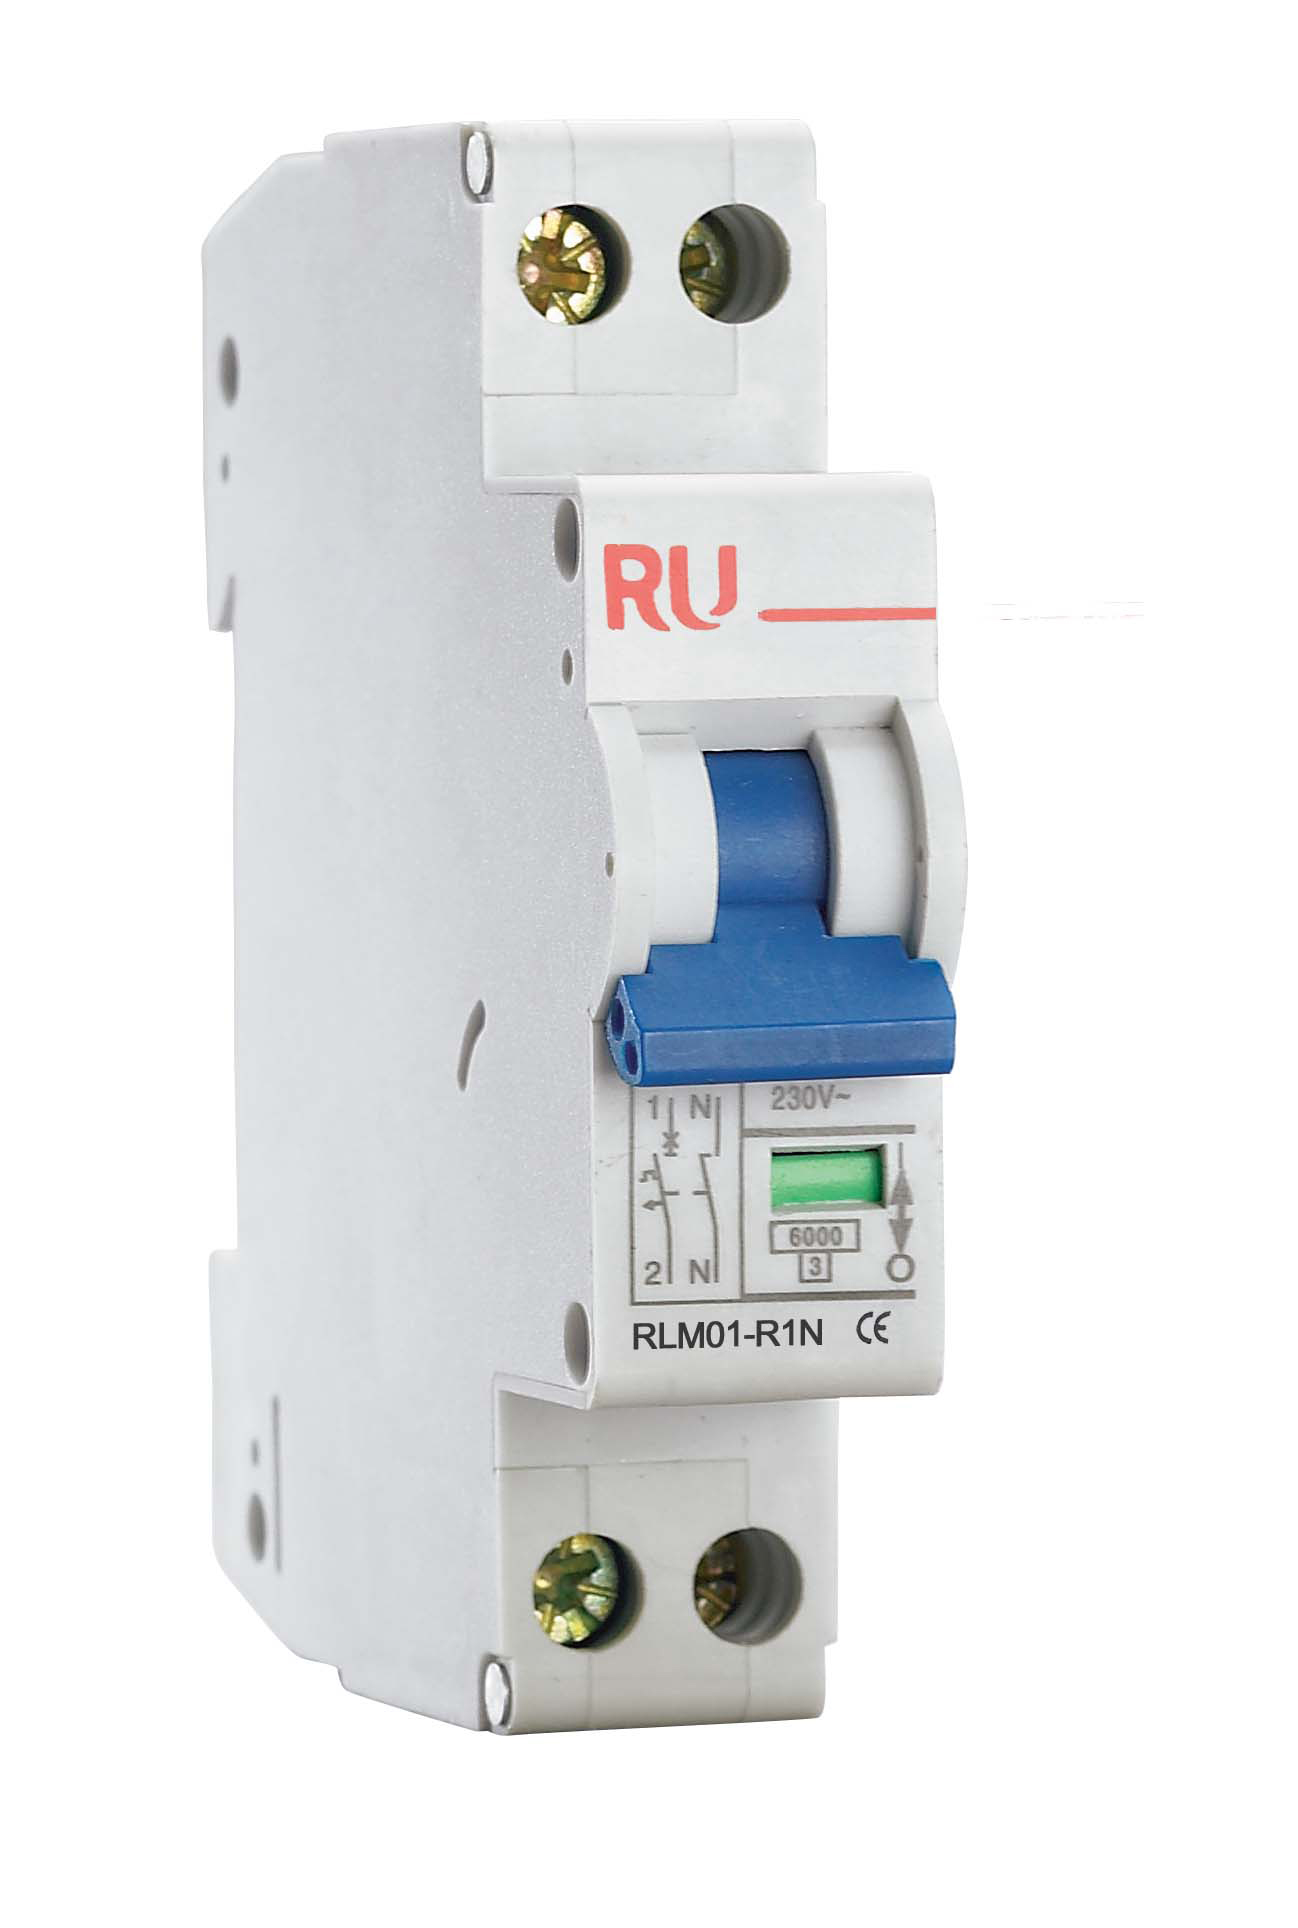 Guide To Consumer Units At Uk Electrical Supplies The Circuit Breaker Is A Switch Designed Automatically Shut Off This An Mcb Minature Which Automatic Protection Device In Fusebox That Switches If They Detect Fault